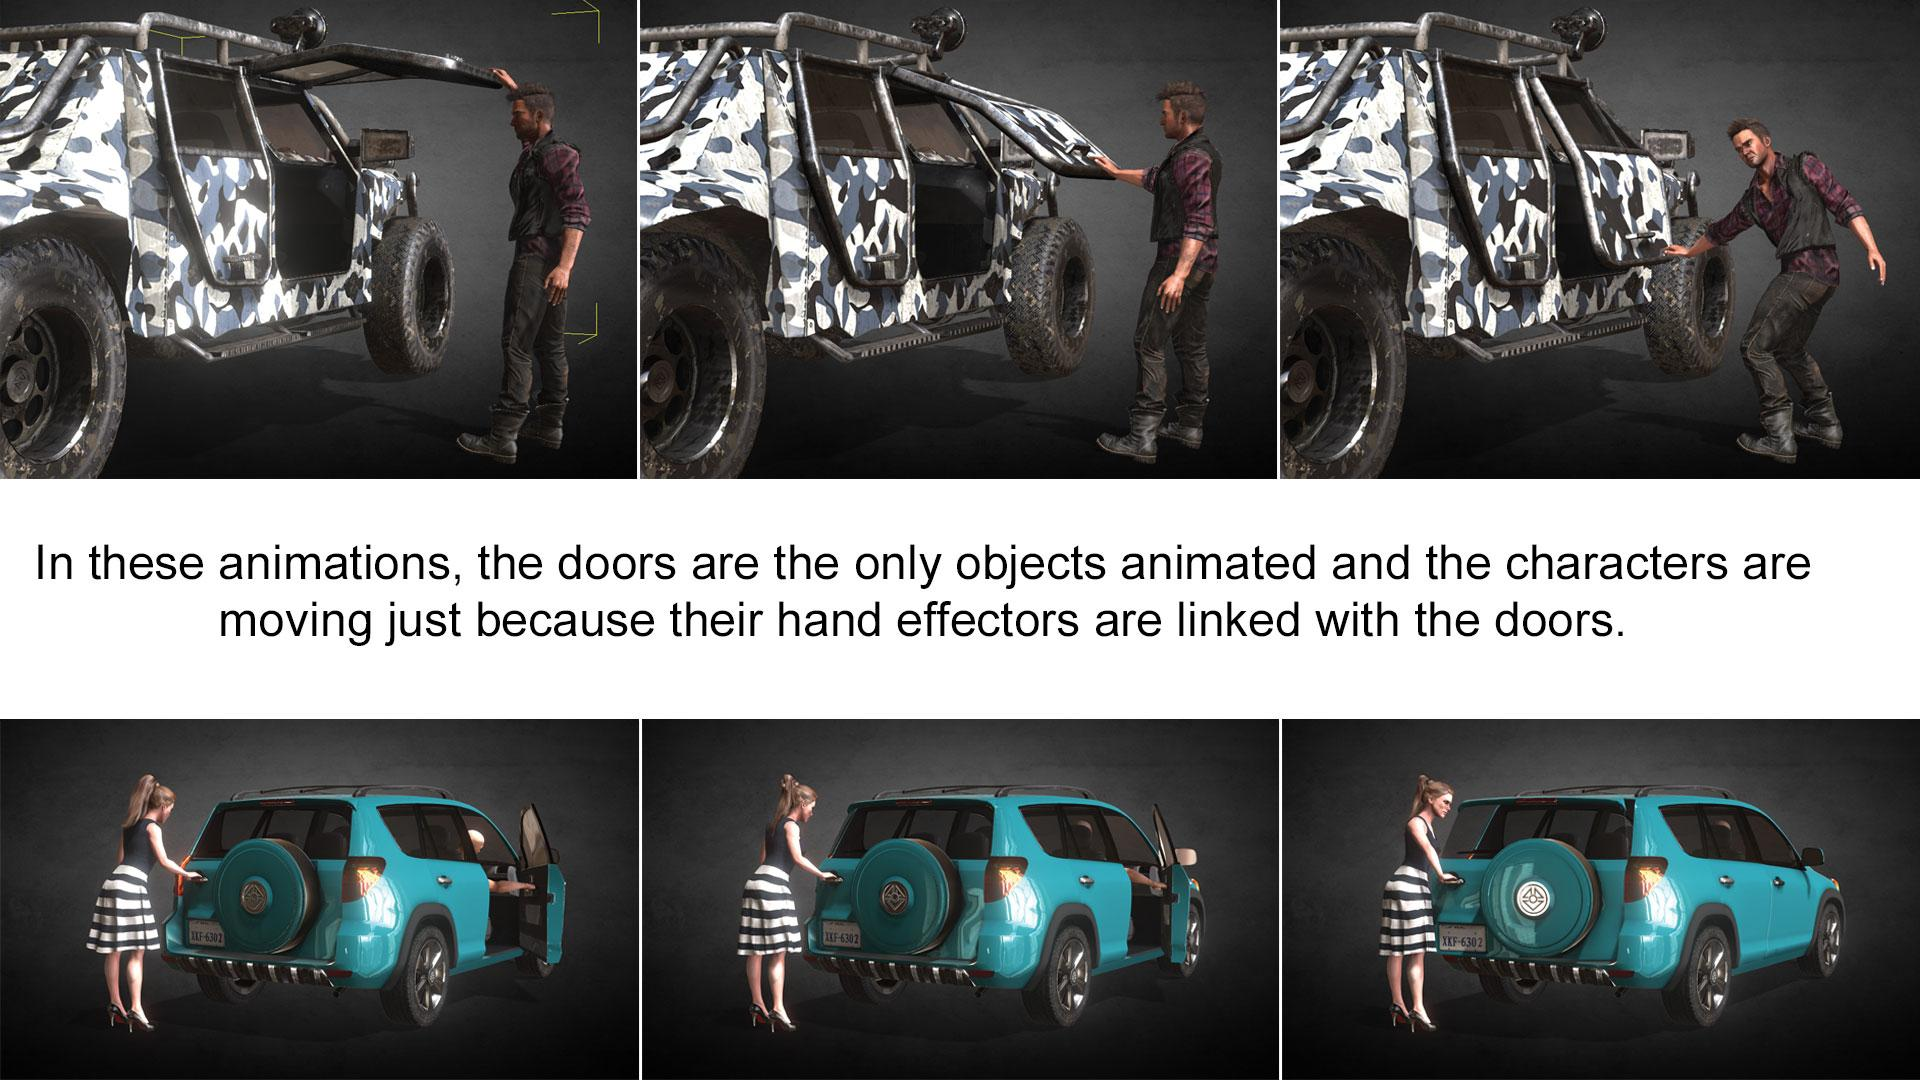 Make vehicle animations with iClone 7: Import the files in 3ds Max